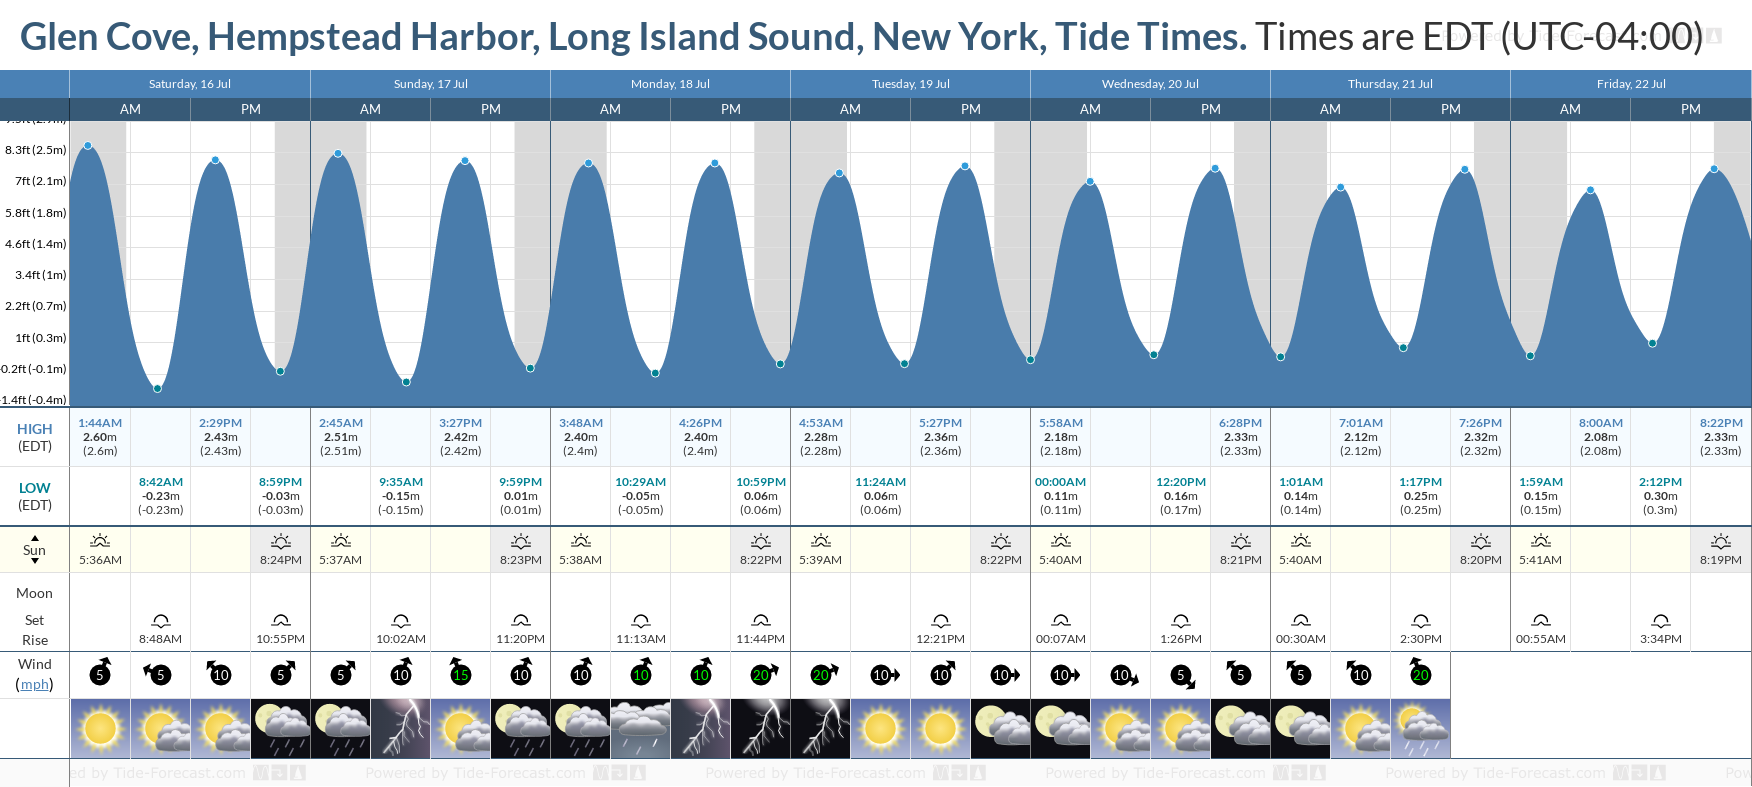 Glen Cove, Hempstead Harbor, Long Island Sound, New York Tide Chart including high and low tide tide times for the next 7 days